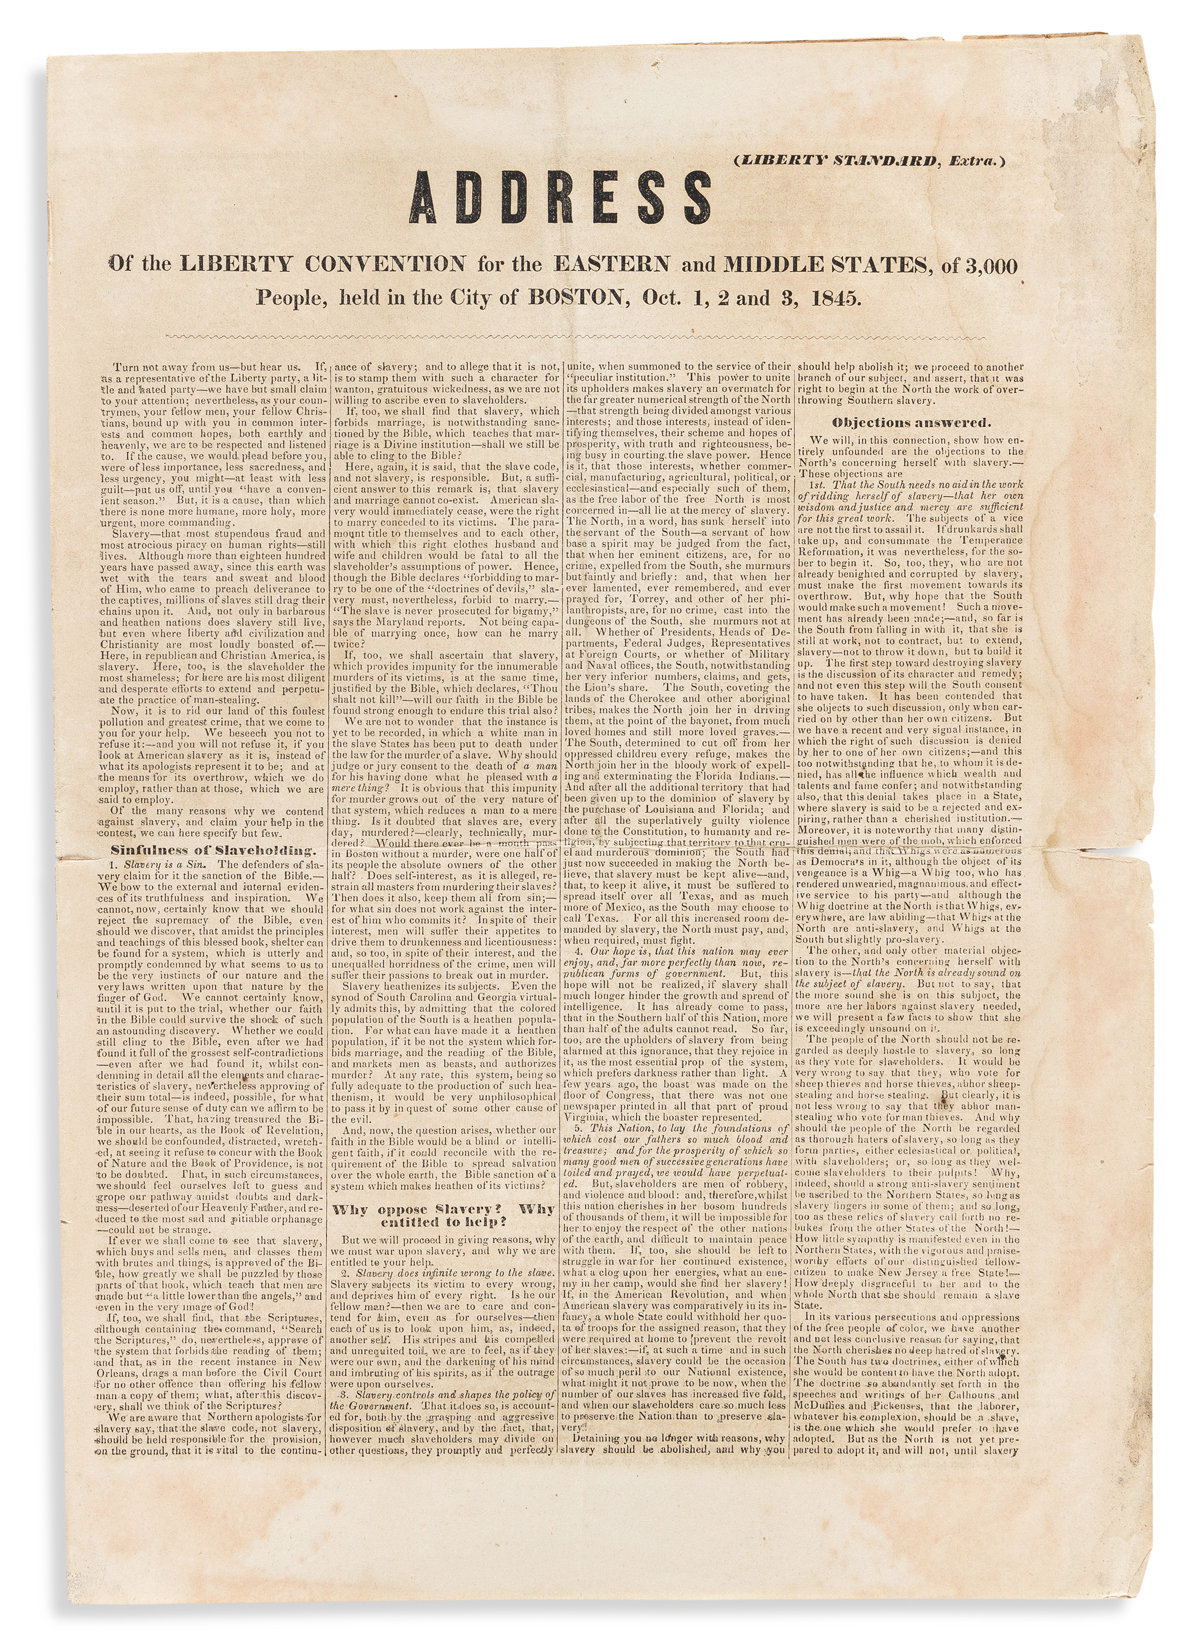 (SLAVERY AND ABOLITION.) Address of the Liberty Convention for the Eastern and Middle States.